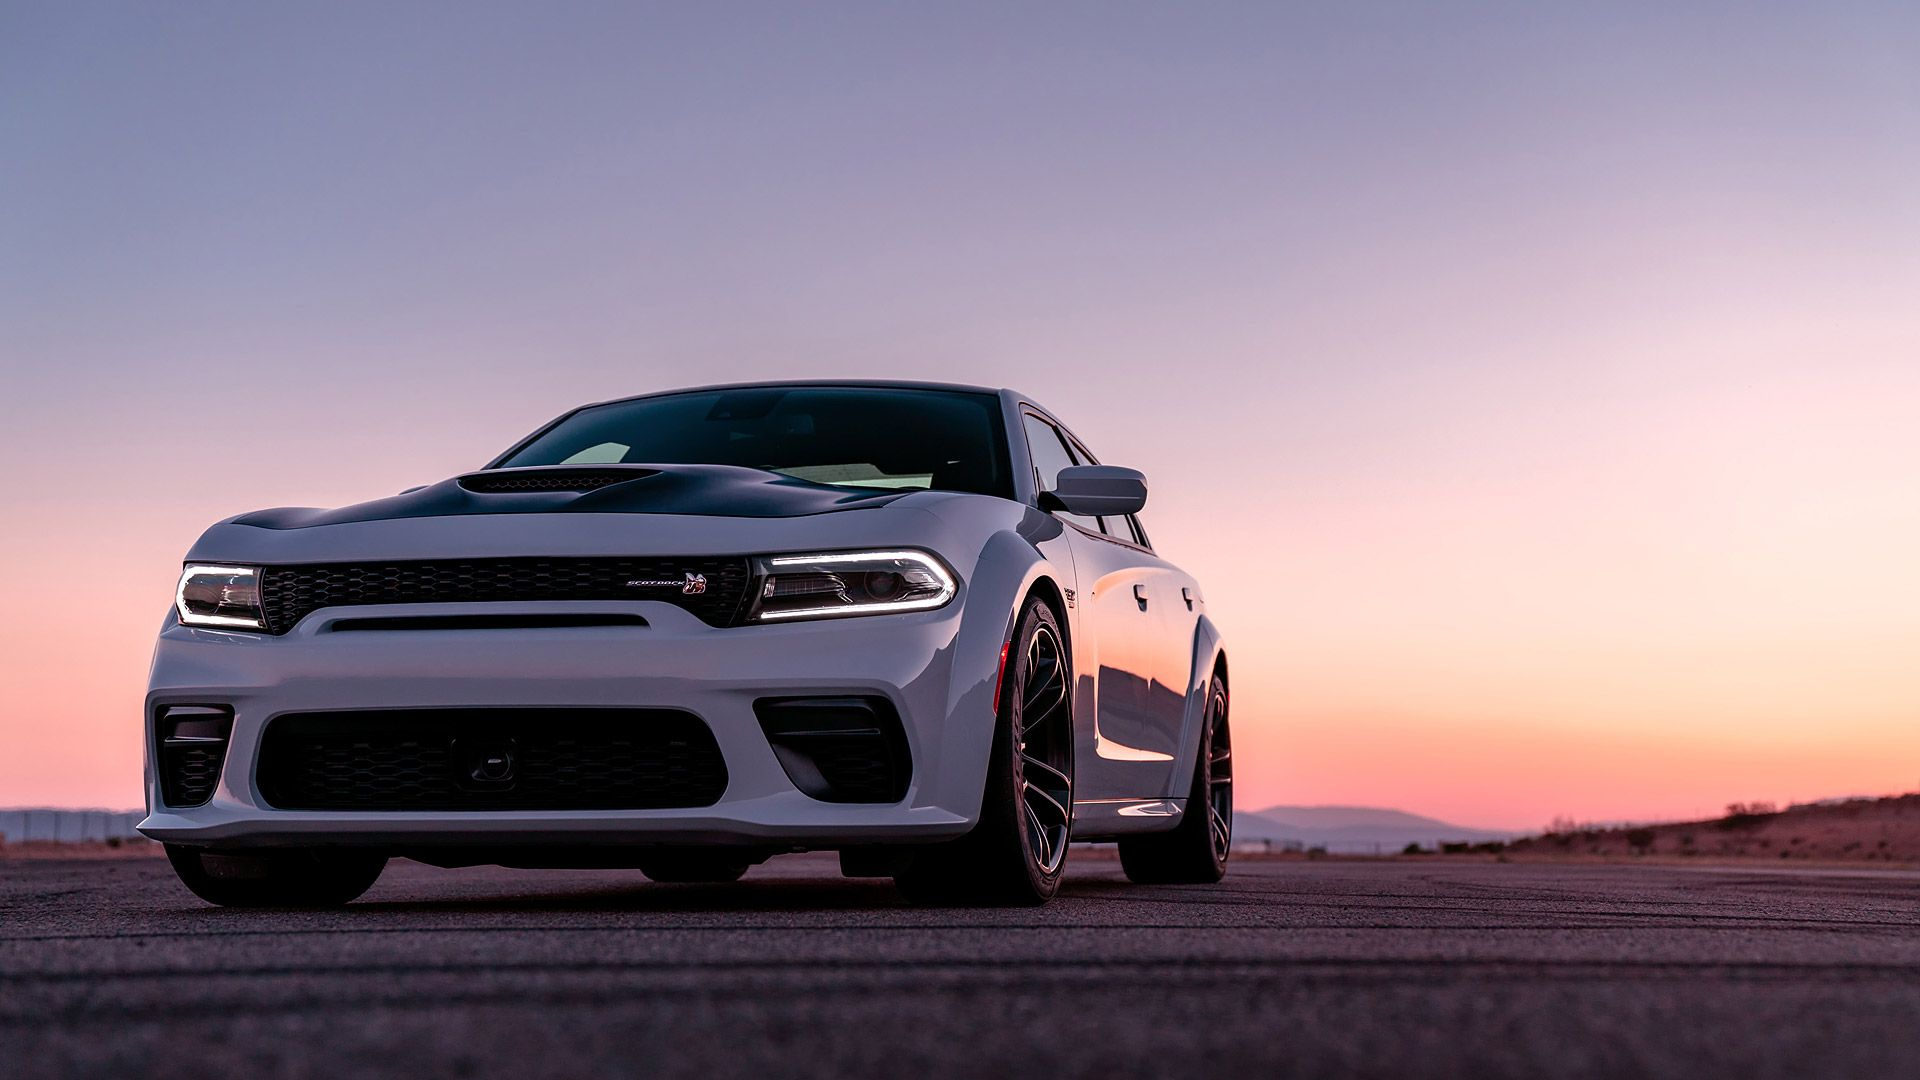 2020 Dodge Charger Scat Pack Widebody Dodge Charger Dodge Charger Srt Dodge Charger Hellcat